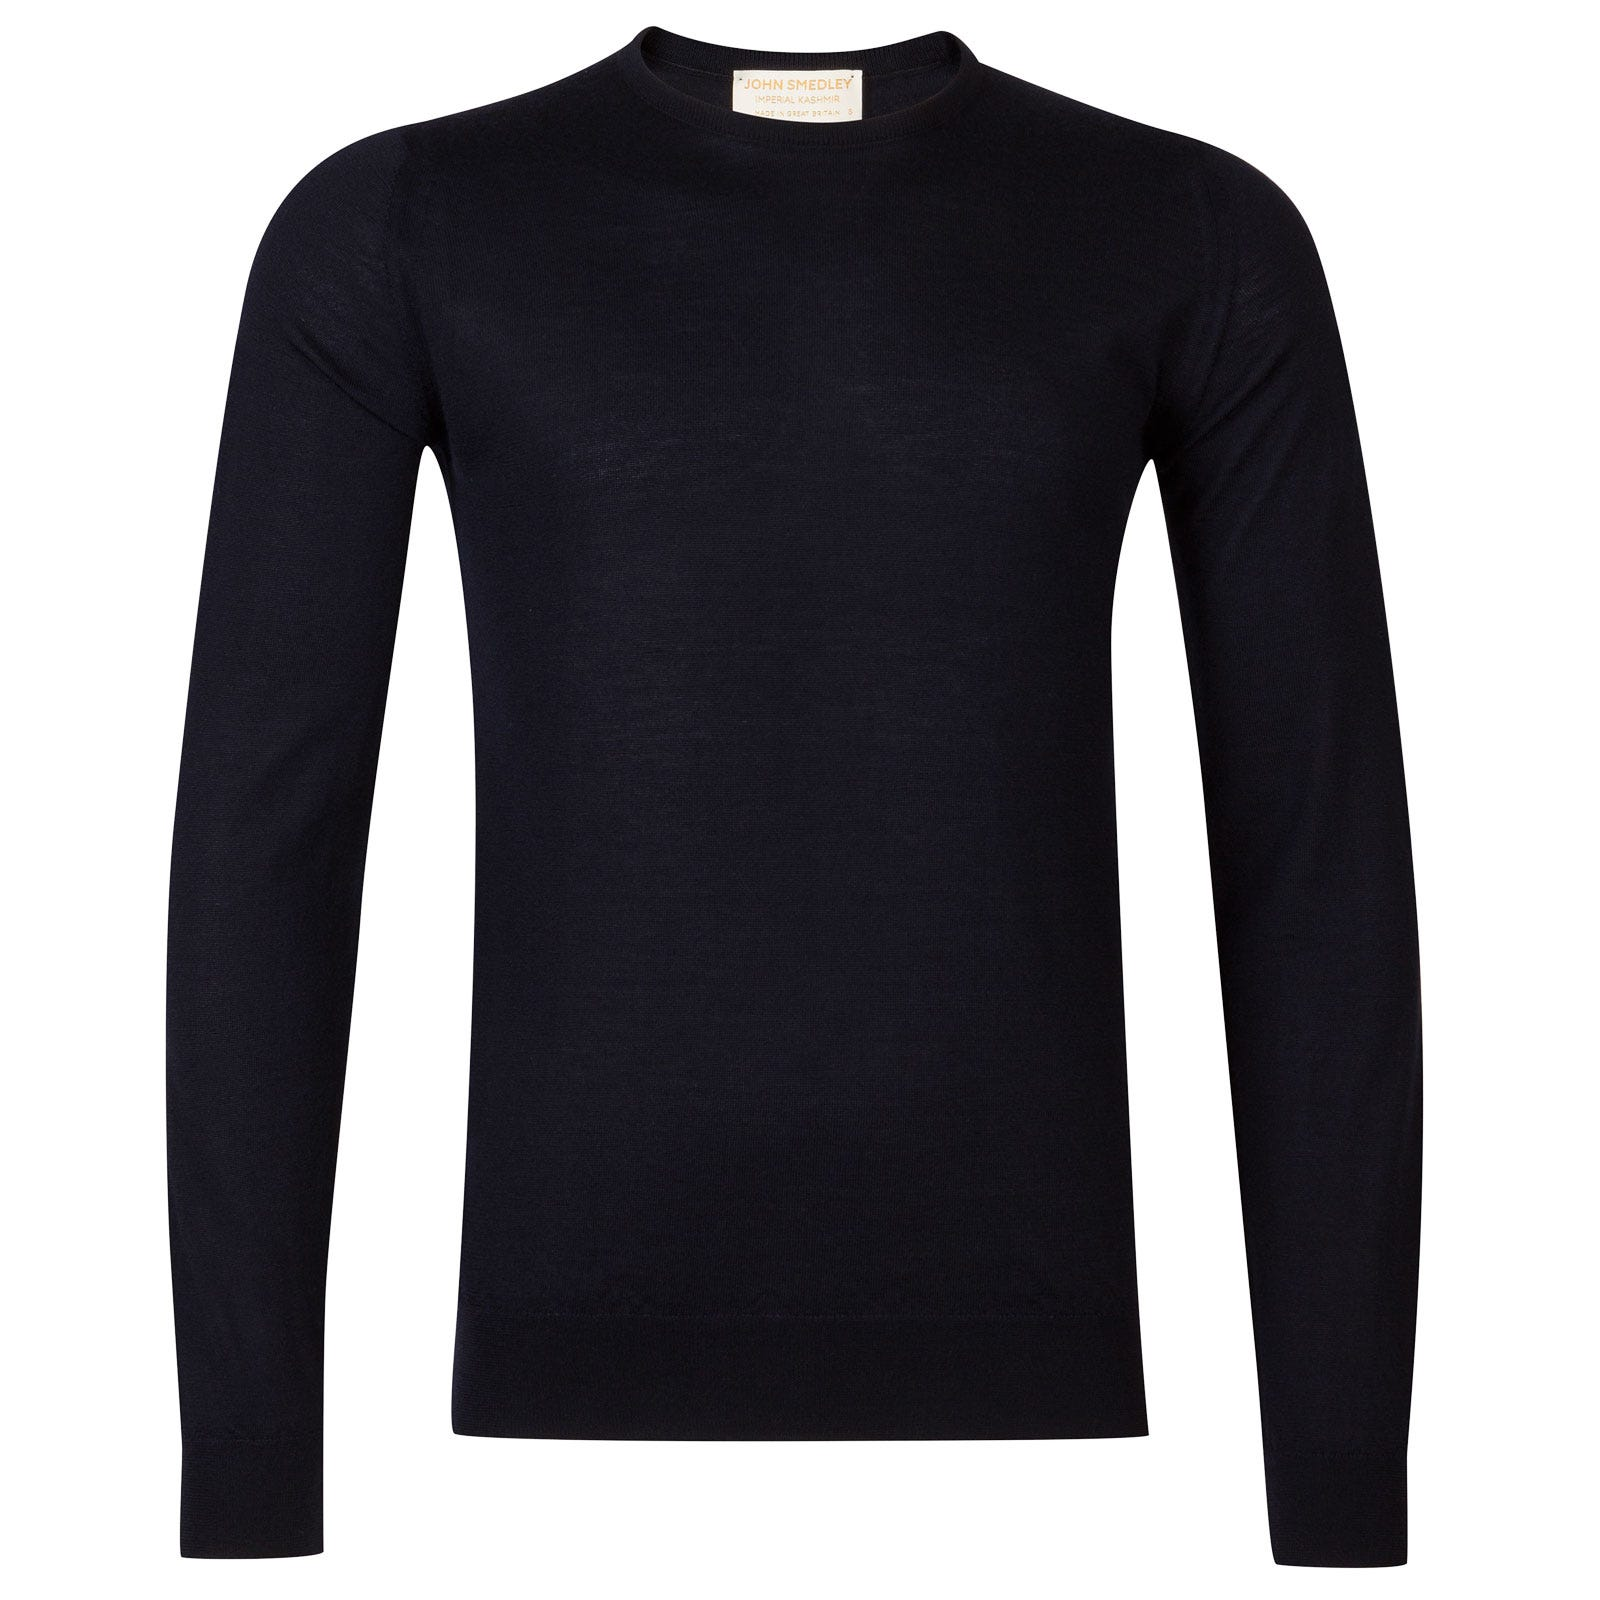 John Smedley Norland Cashmere and Silk Pullover in Navy-S